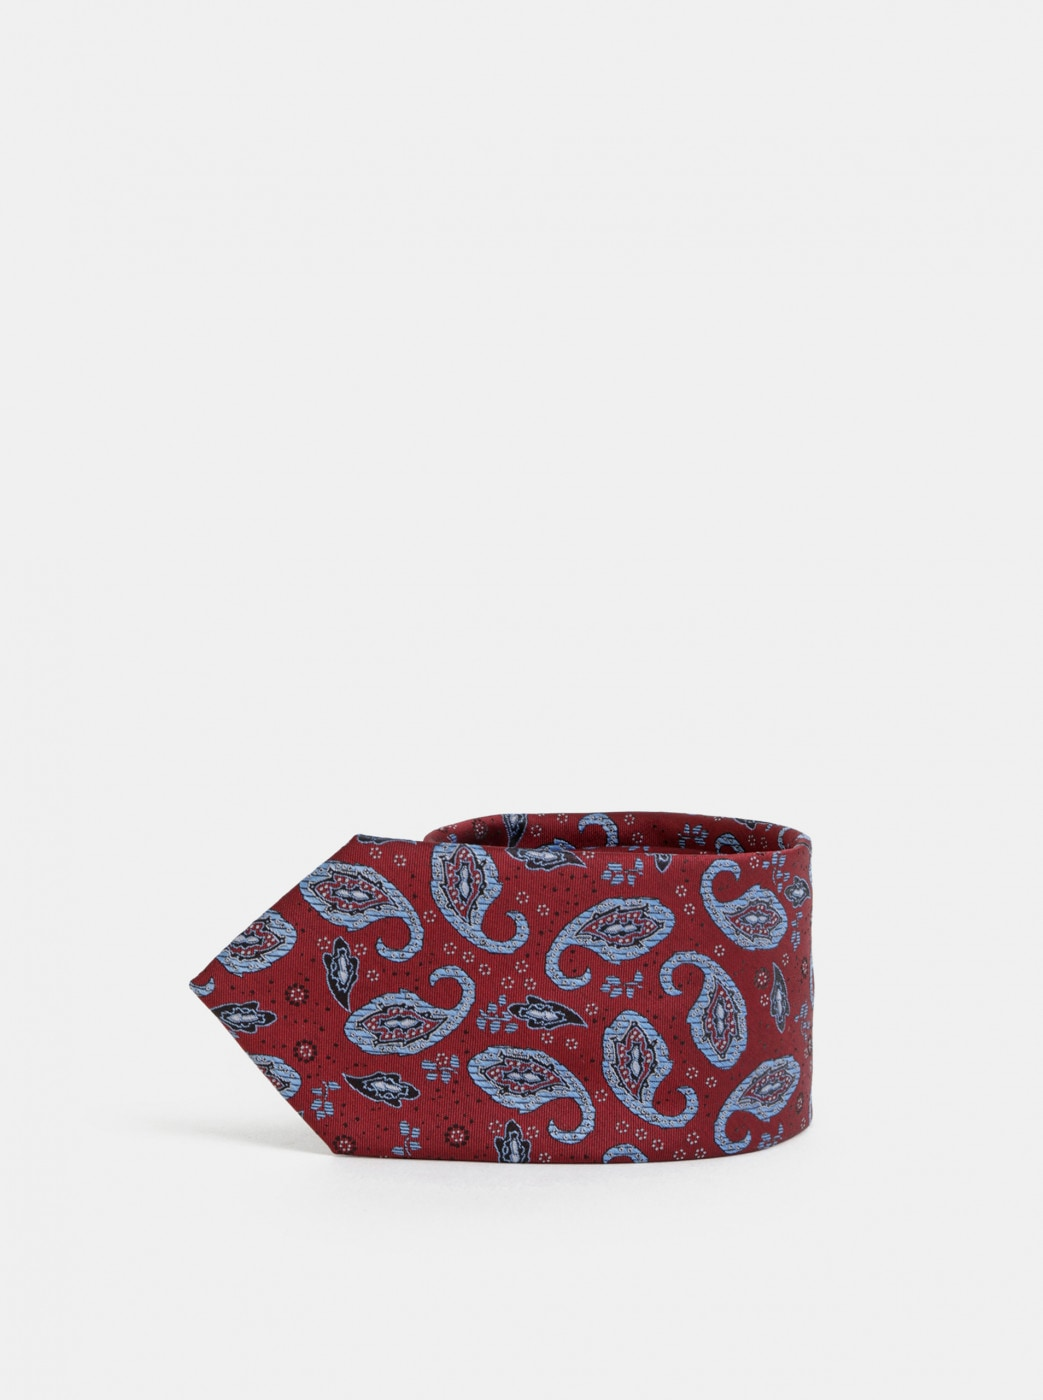 Burgundy Patterned Tie Selected Homme Martin